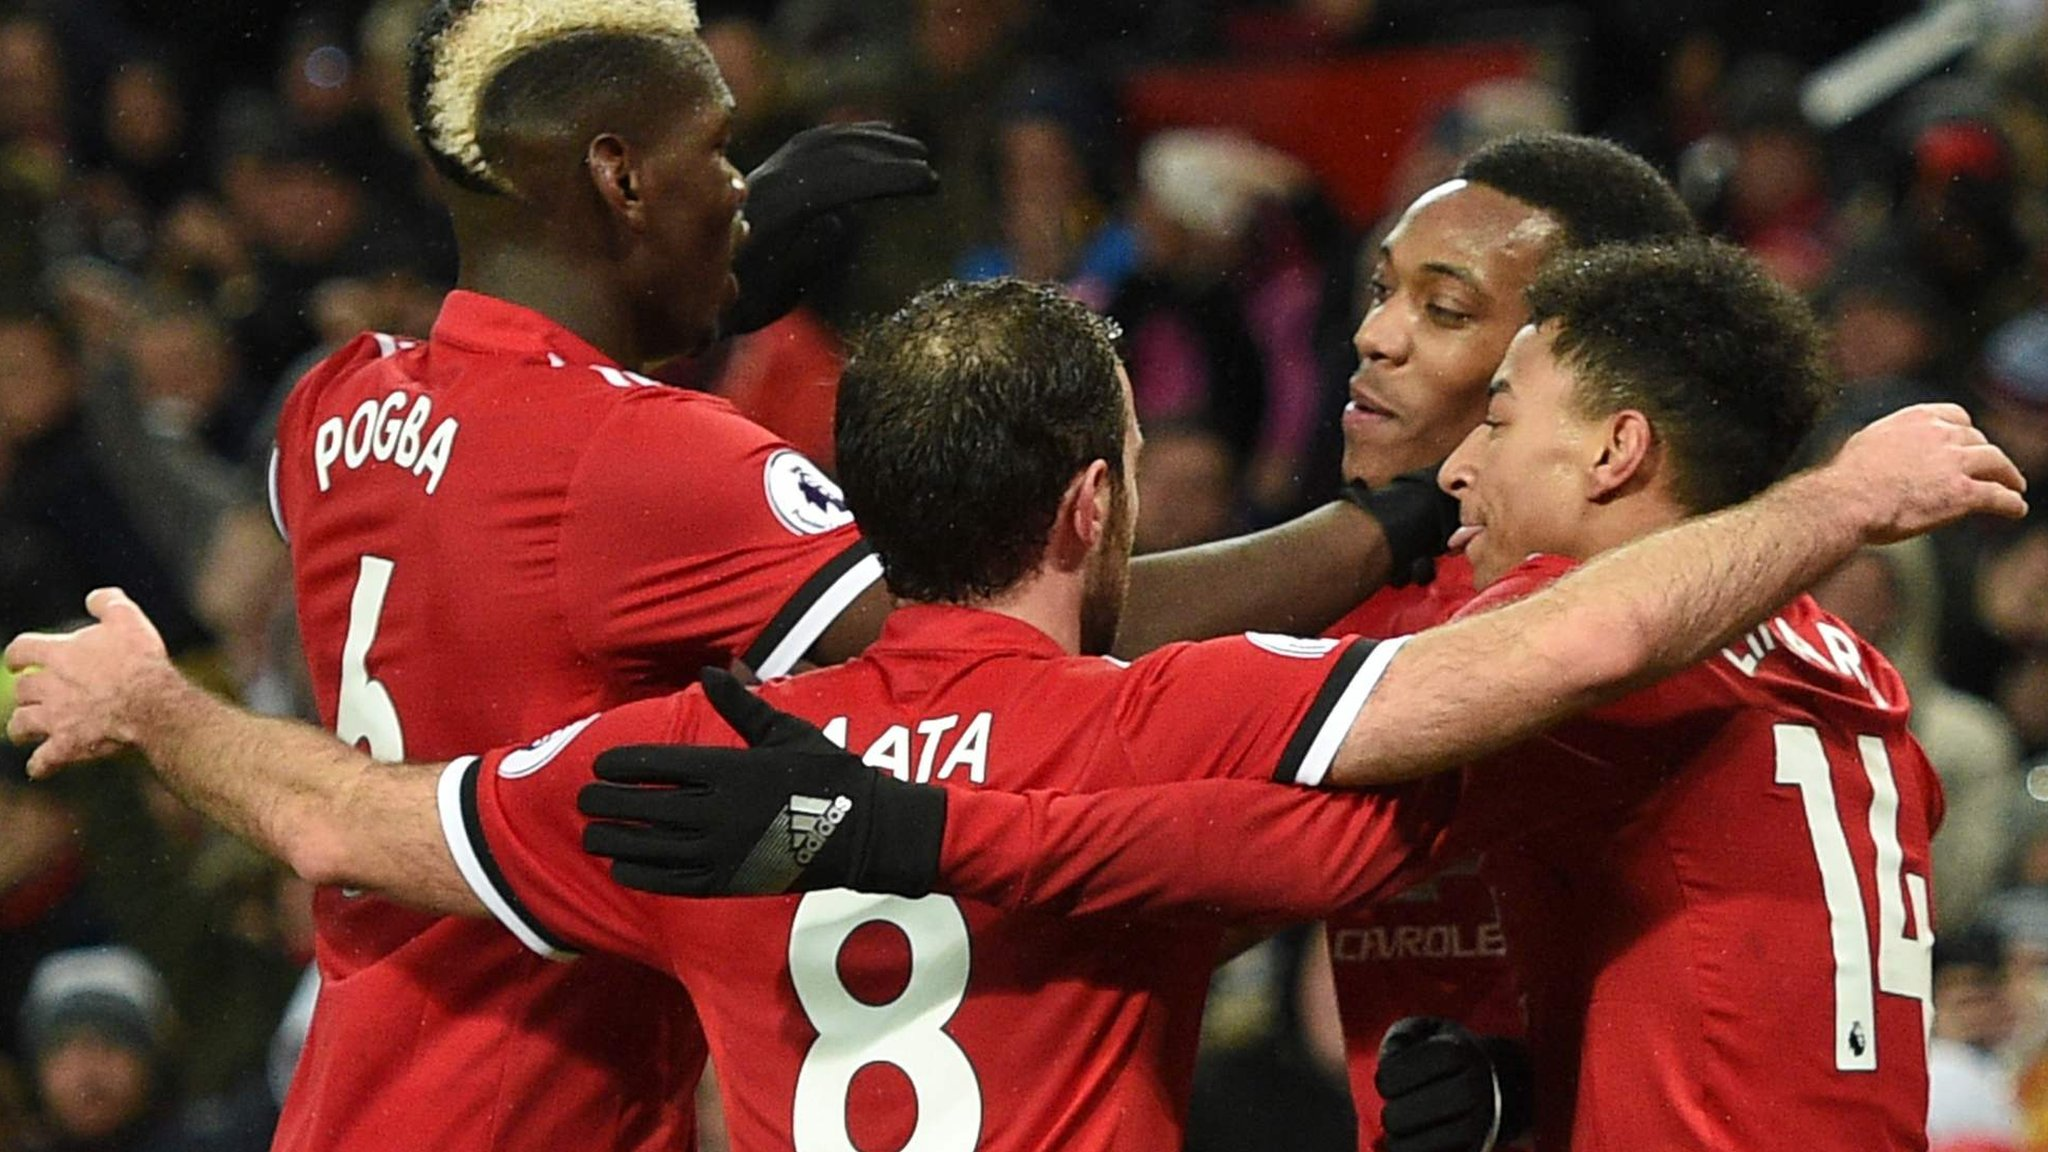 Pogba stars as Man Utd cruise to victory against Stoke